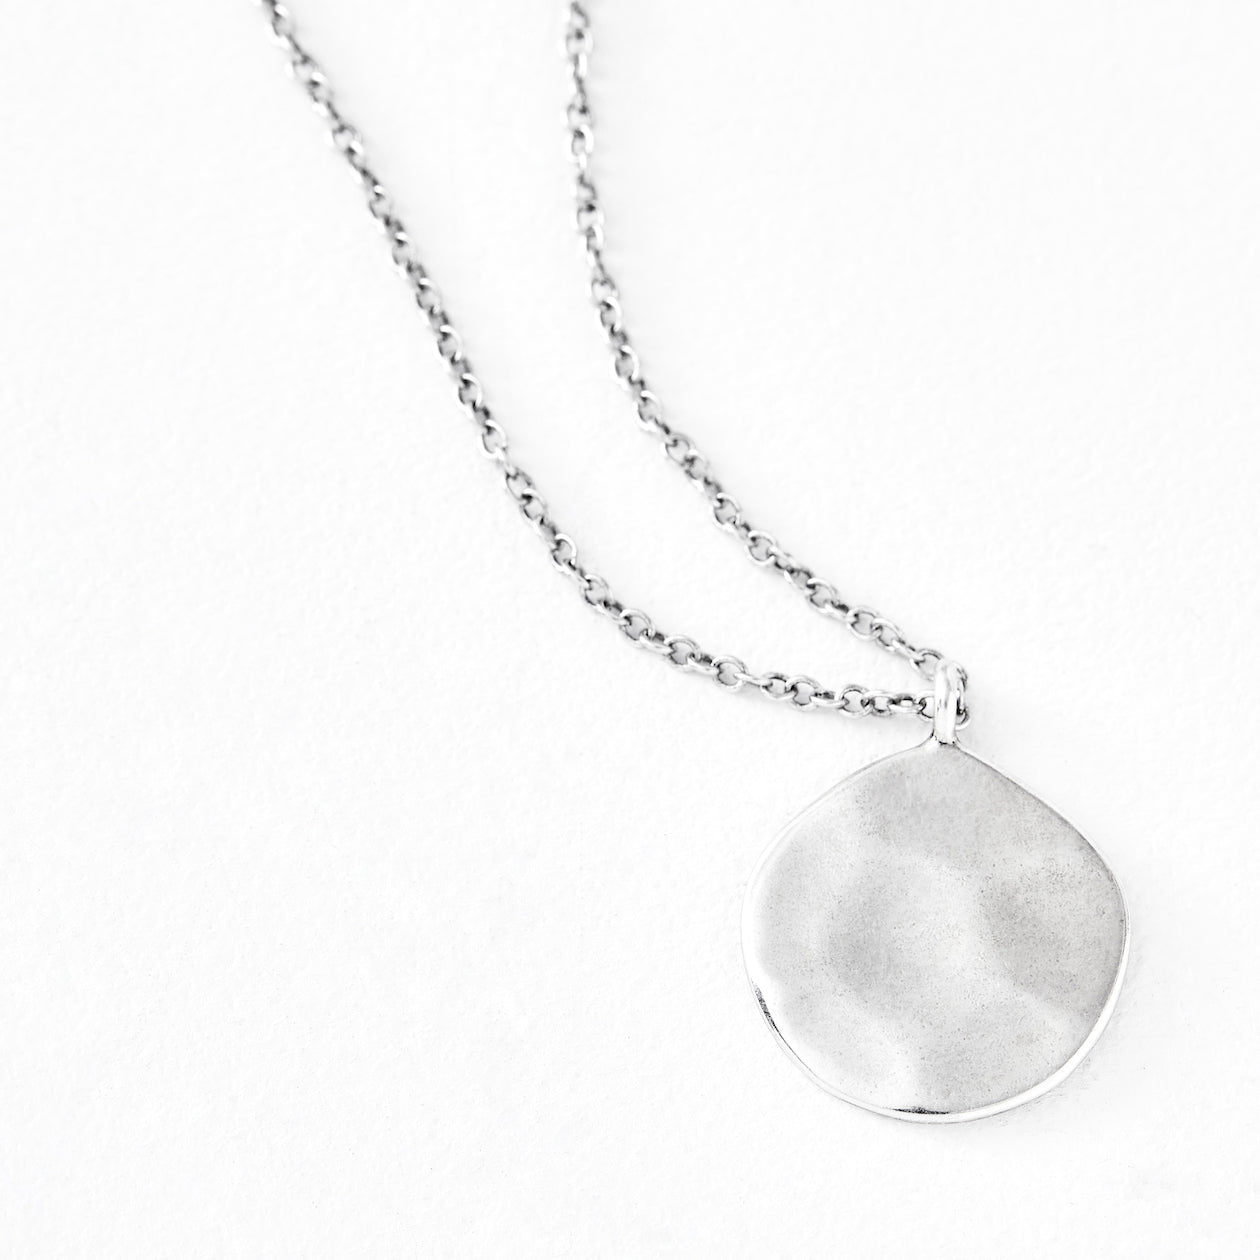 Luv AJ Organic Disc Silver Pendant Necklace